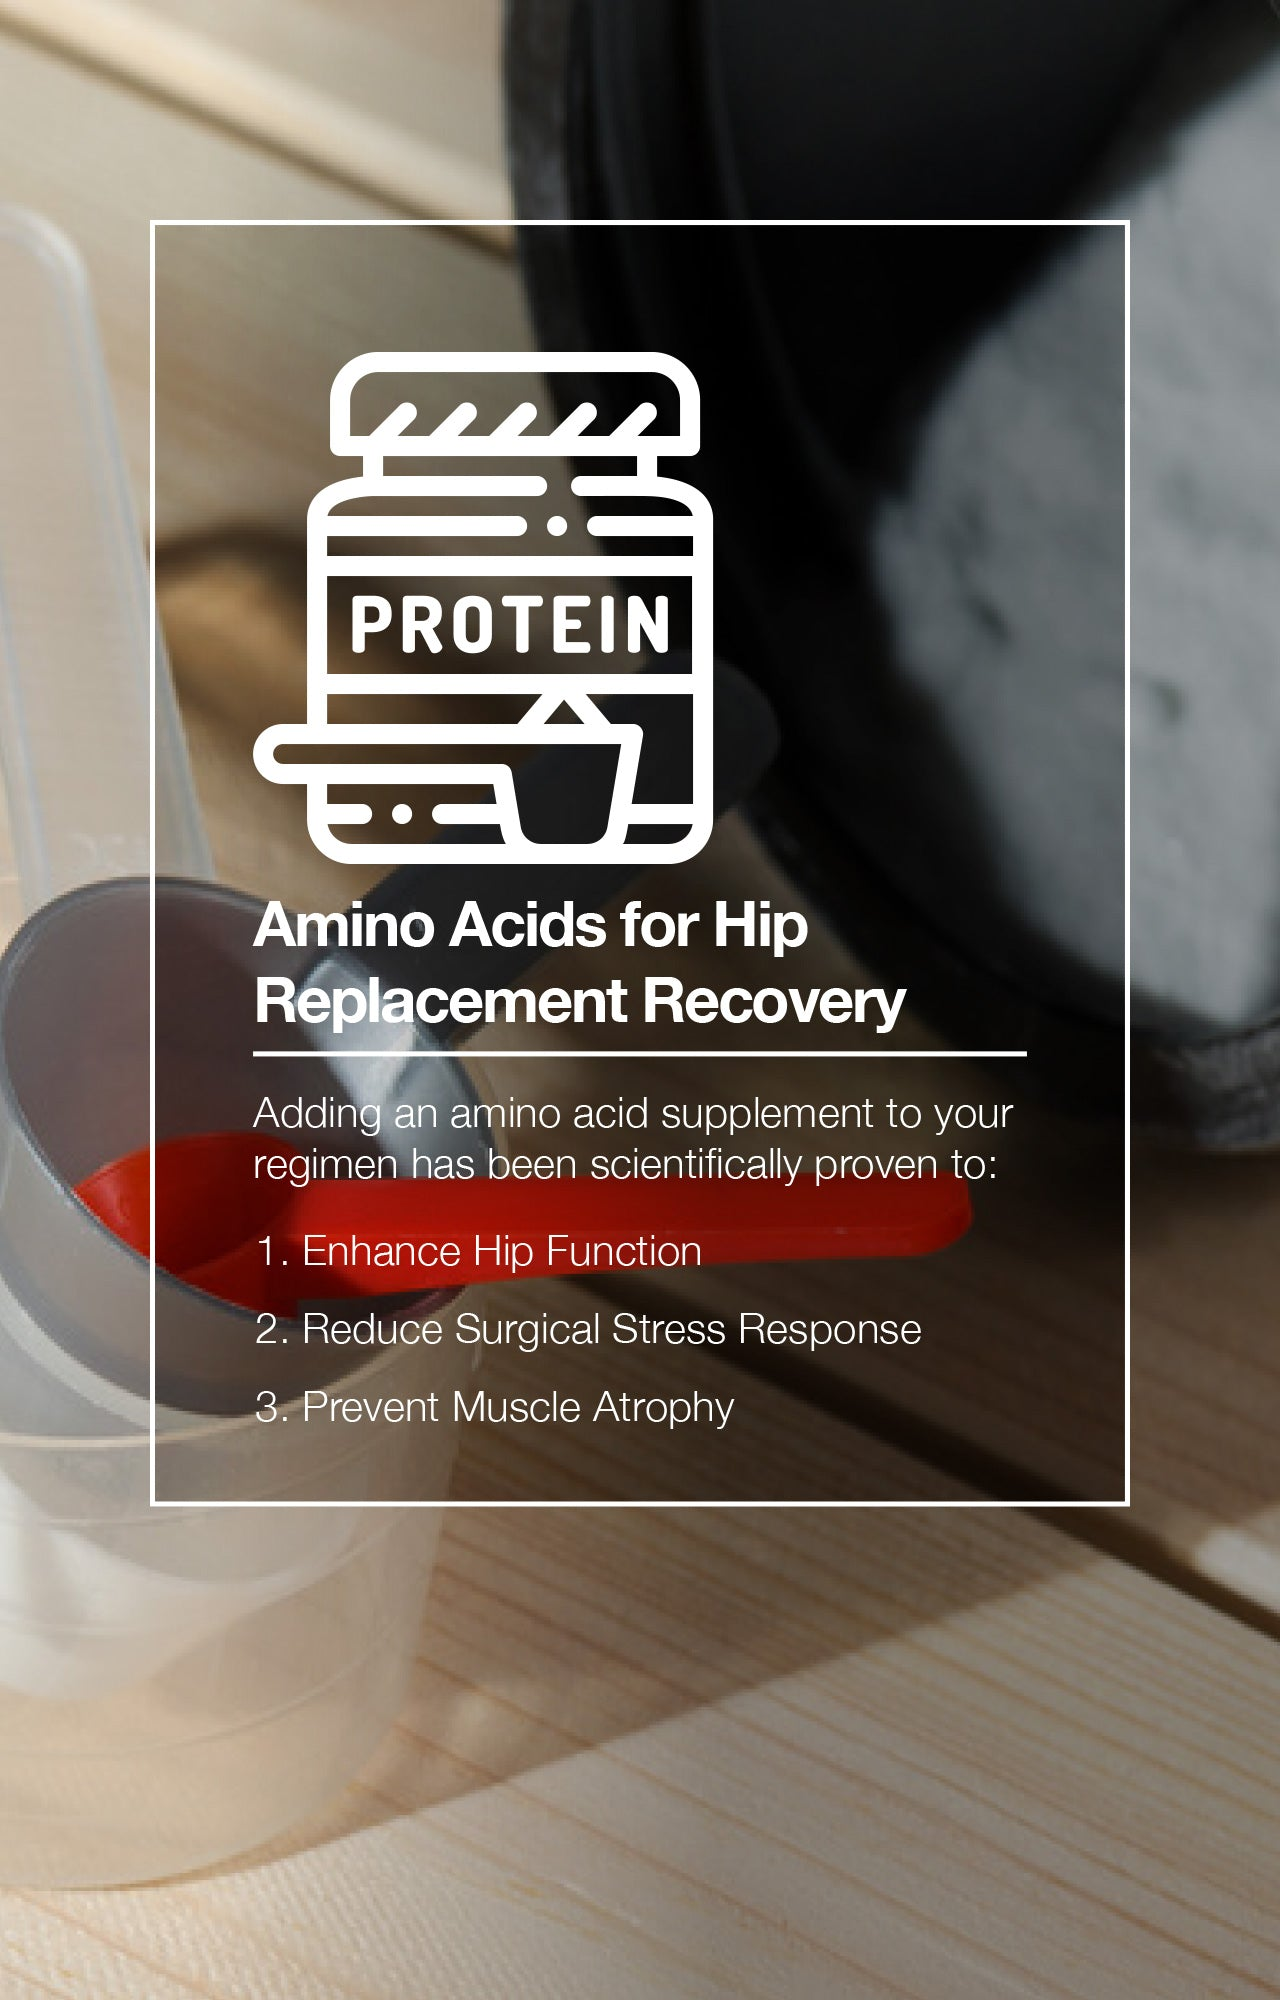 Amino Acids for Hip Replacement Recovery